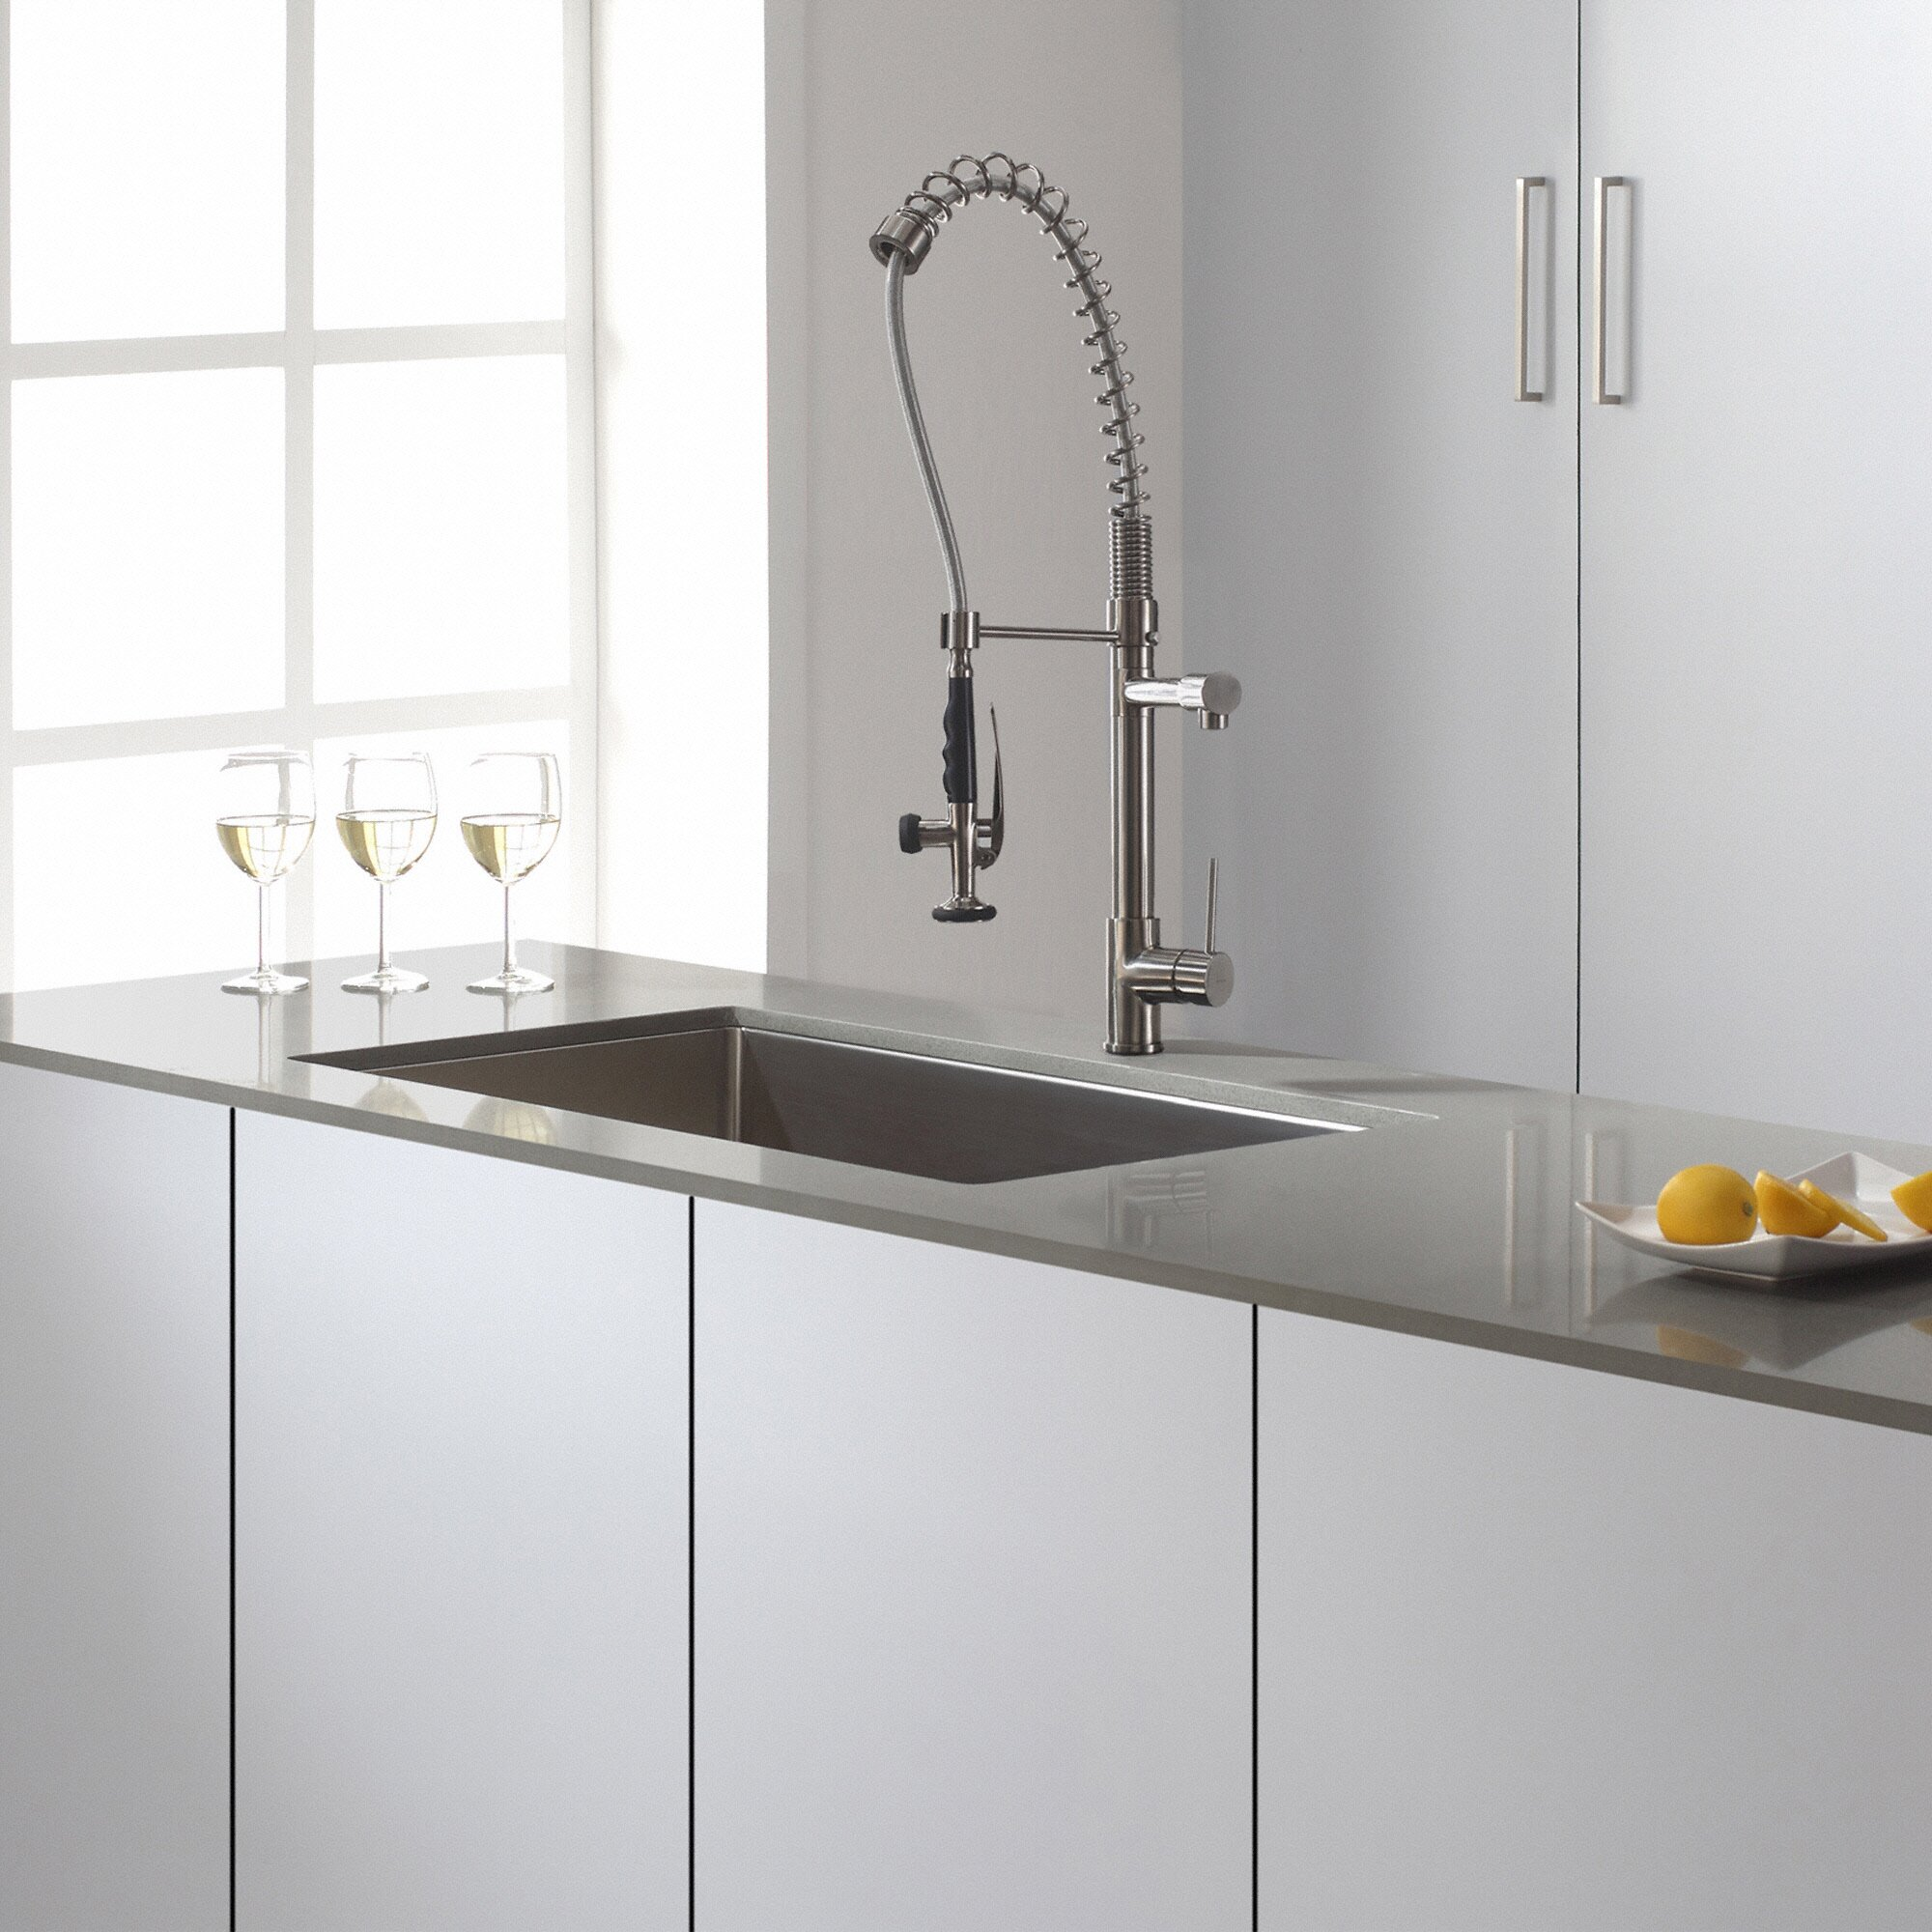 "Kitchen Sink Kraus: Kraus 32"" X 19"" Undermount Kitchen Sink & Reviews"